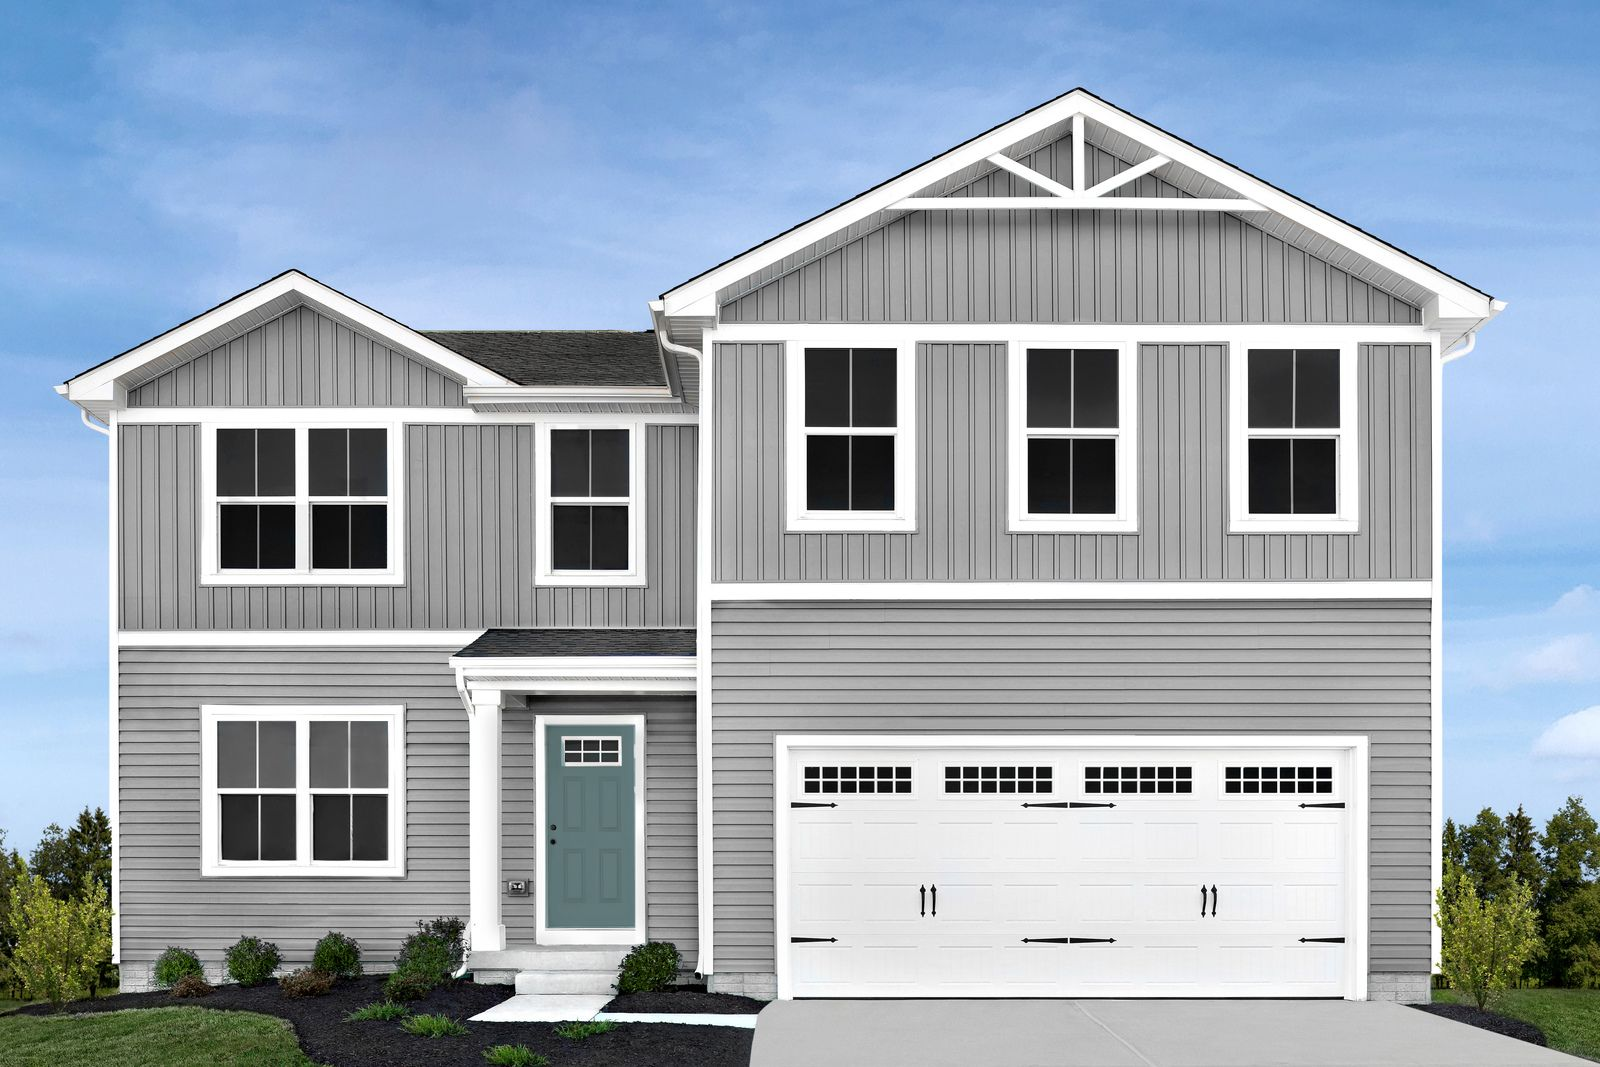 Own a new home in a tree-lined community with premium homesites in Mauldin.:With all appliances included and 0% down financing available. Schedule your visit today to learn more!